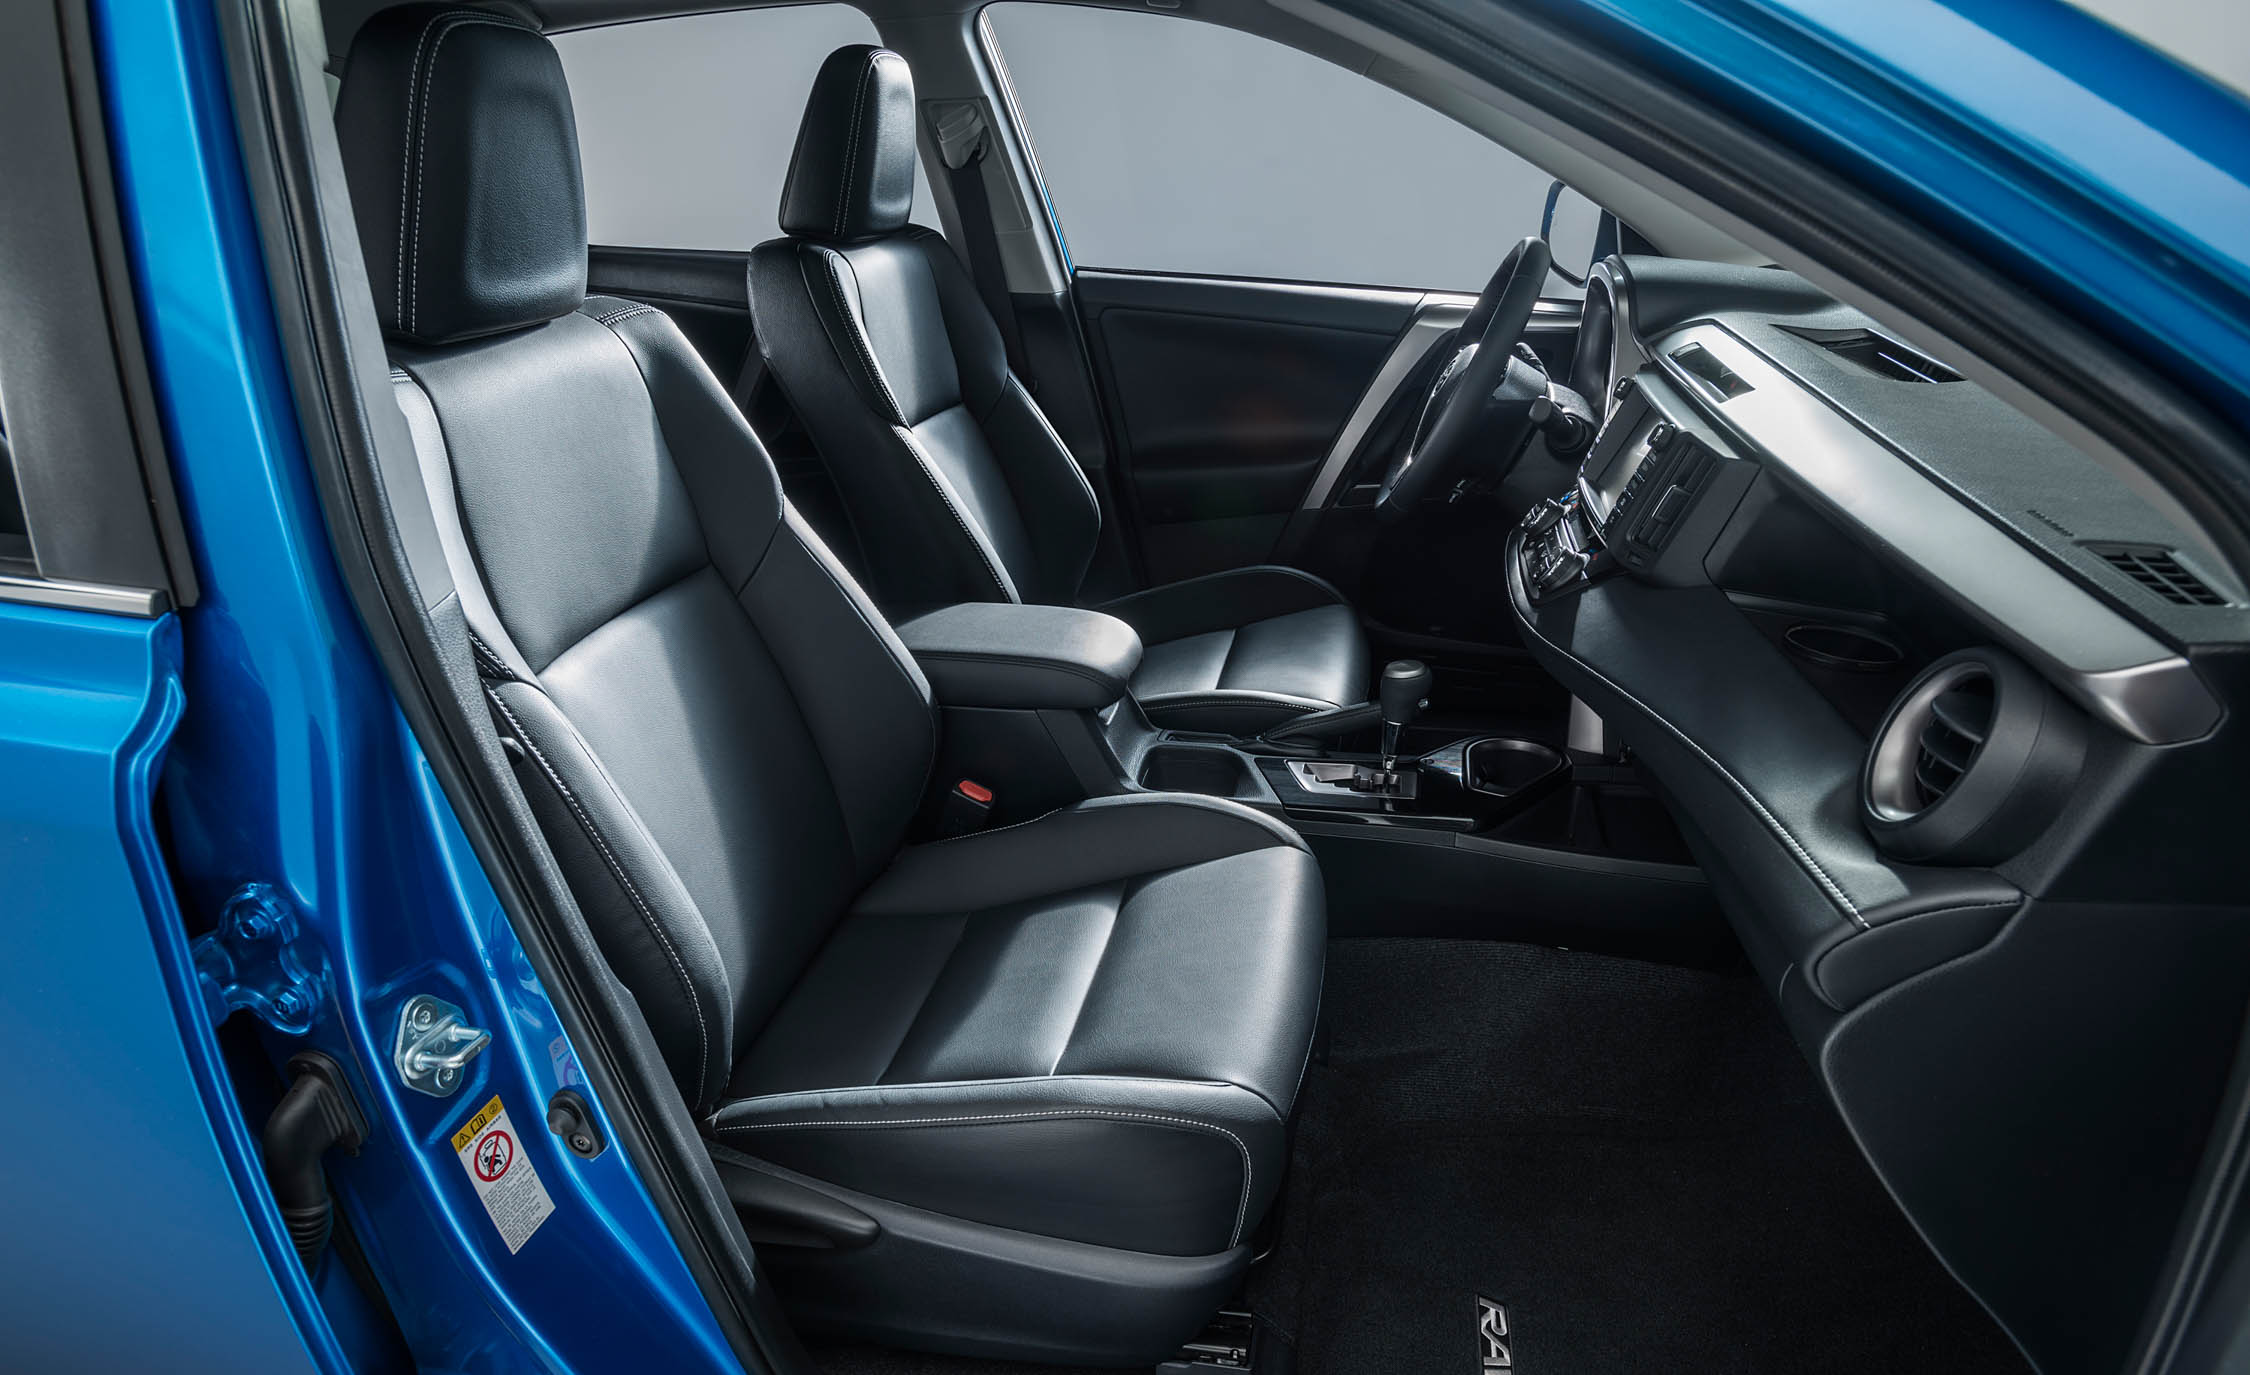 2016 Toyota Rav4 Hybrid Interior Front Seats (Photo 19 of 26)